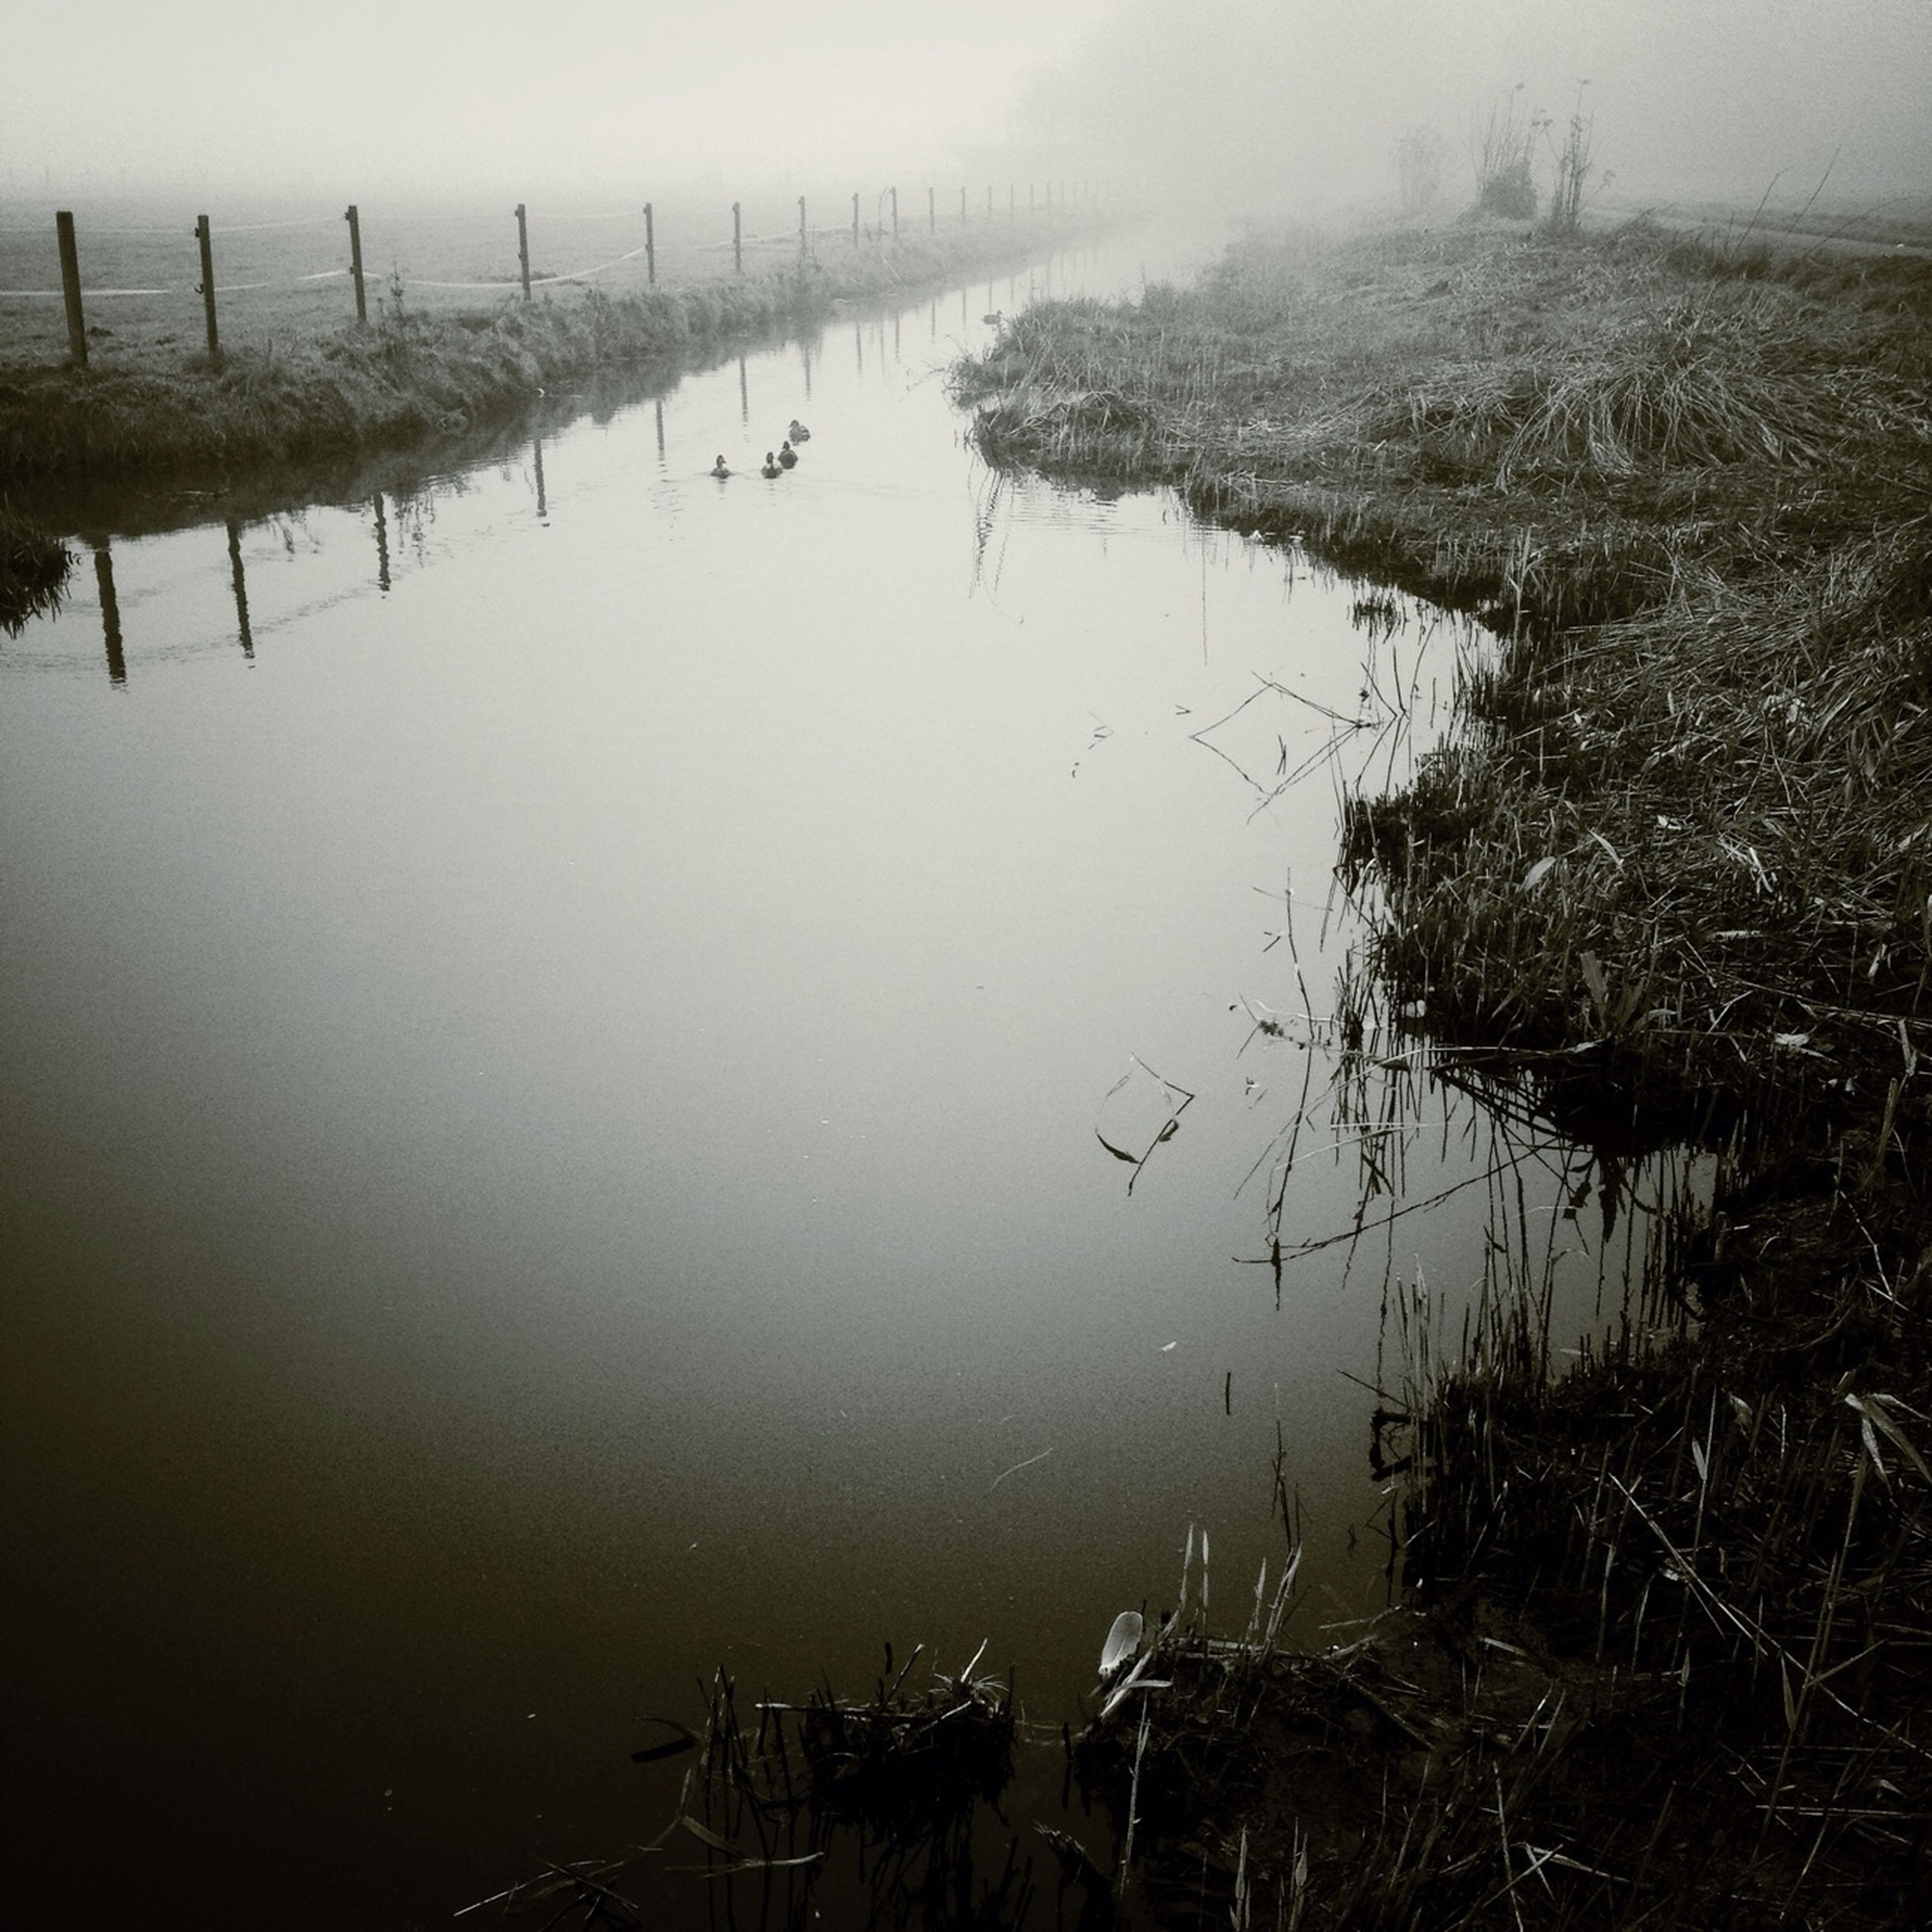 water, weather, reflection, wet, lake, fog, nature, rain, sky, tranquility, foggy, field, drop, river, plant, no people, day, standing water, tranquil scene, outdoors